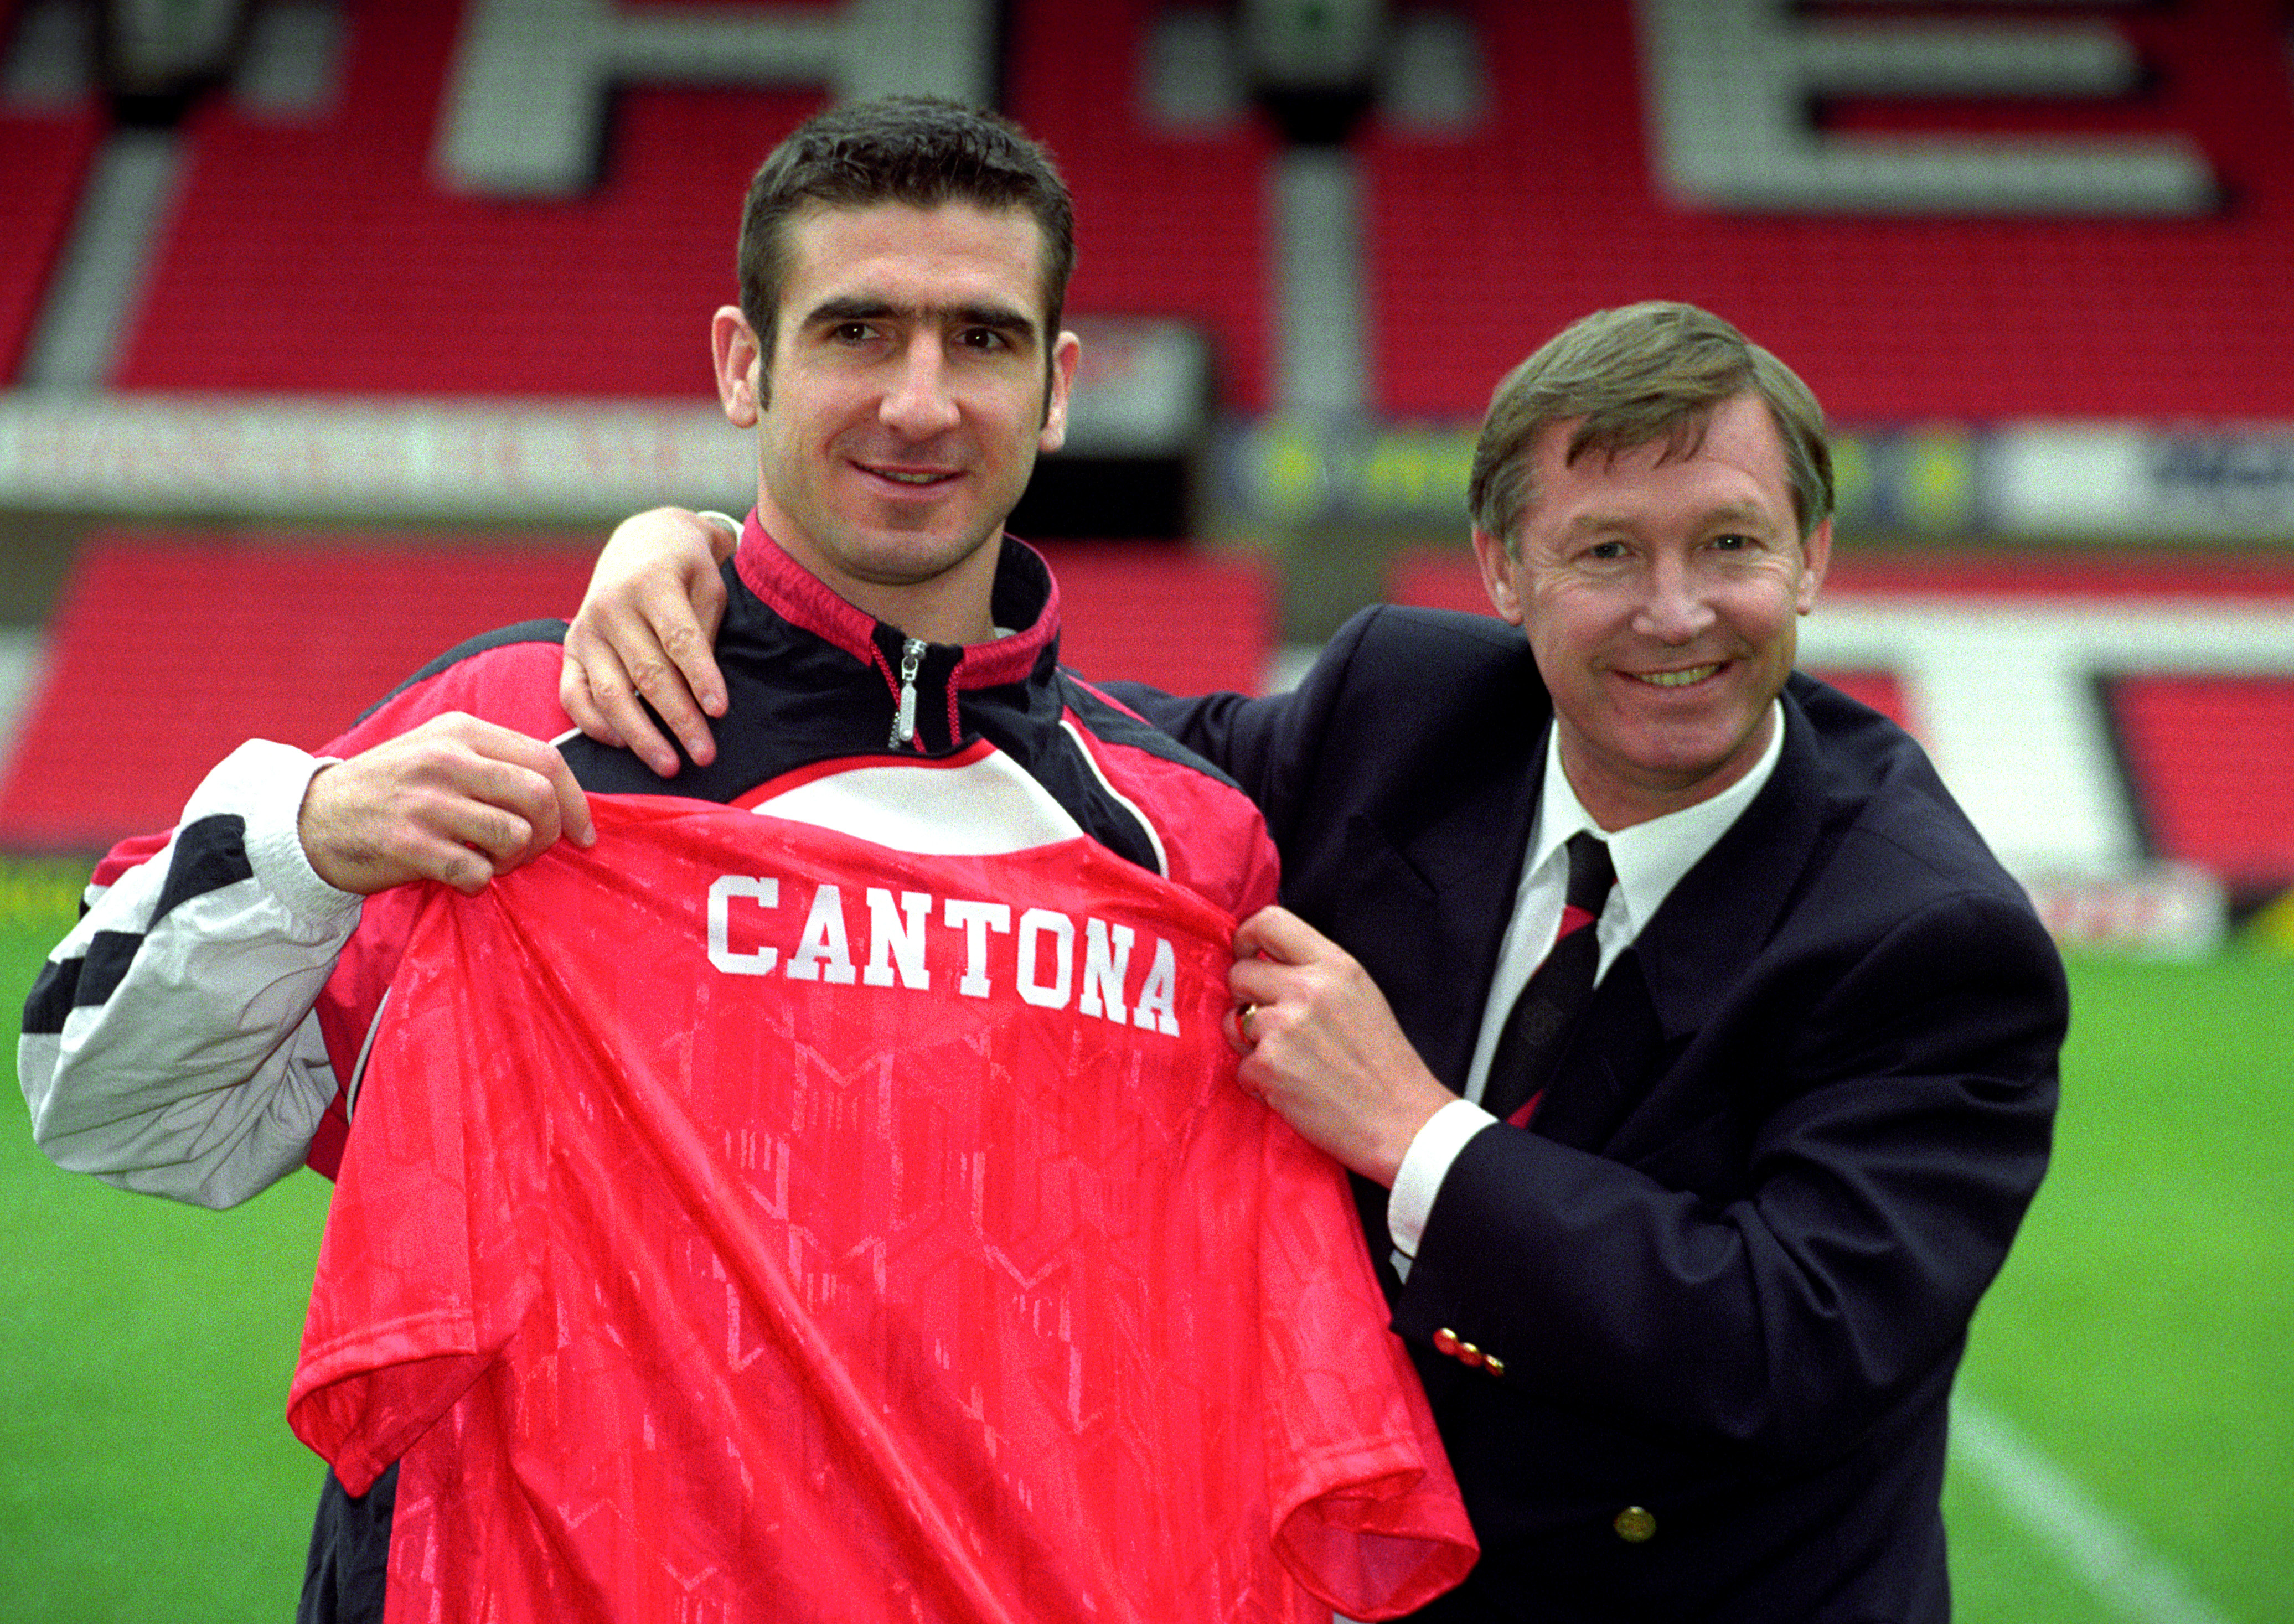 After the match he said, i should've kicked. Eric Cantona Says Only Regret Is Not Kicking Crystal Palace Fan Harder